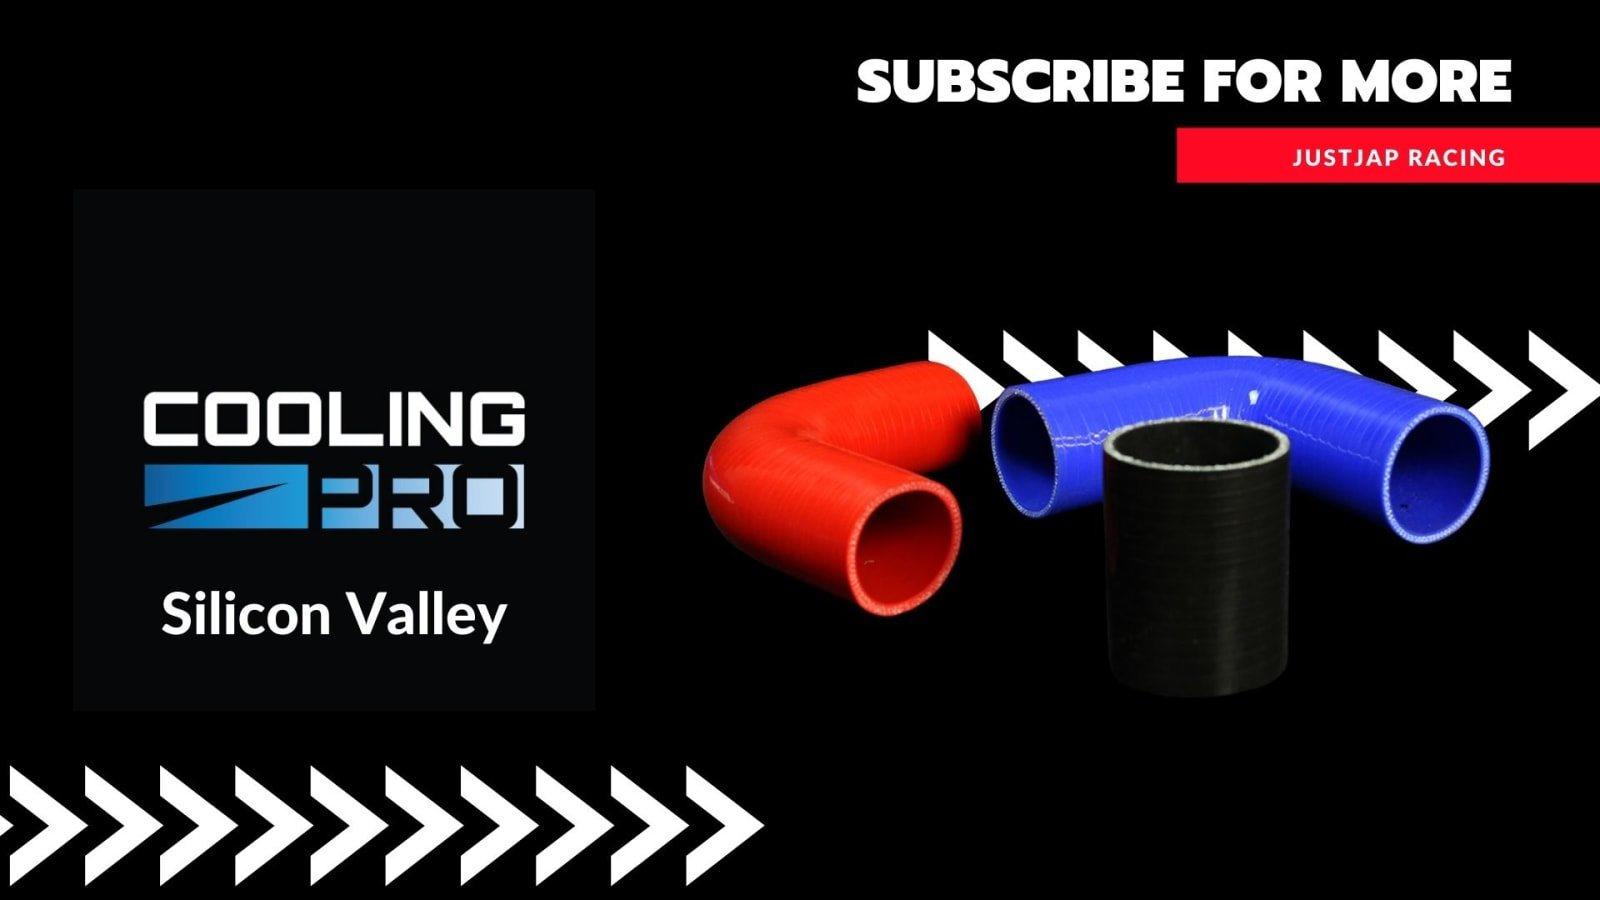 Cooling Pro Silicone 3 Inch / 76mm Straight Joiner Hose